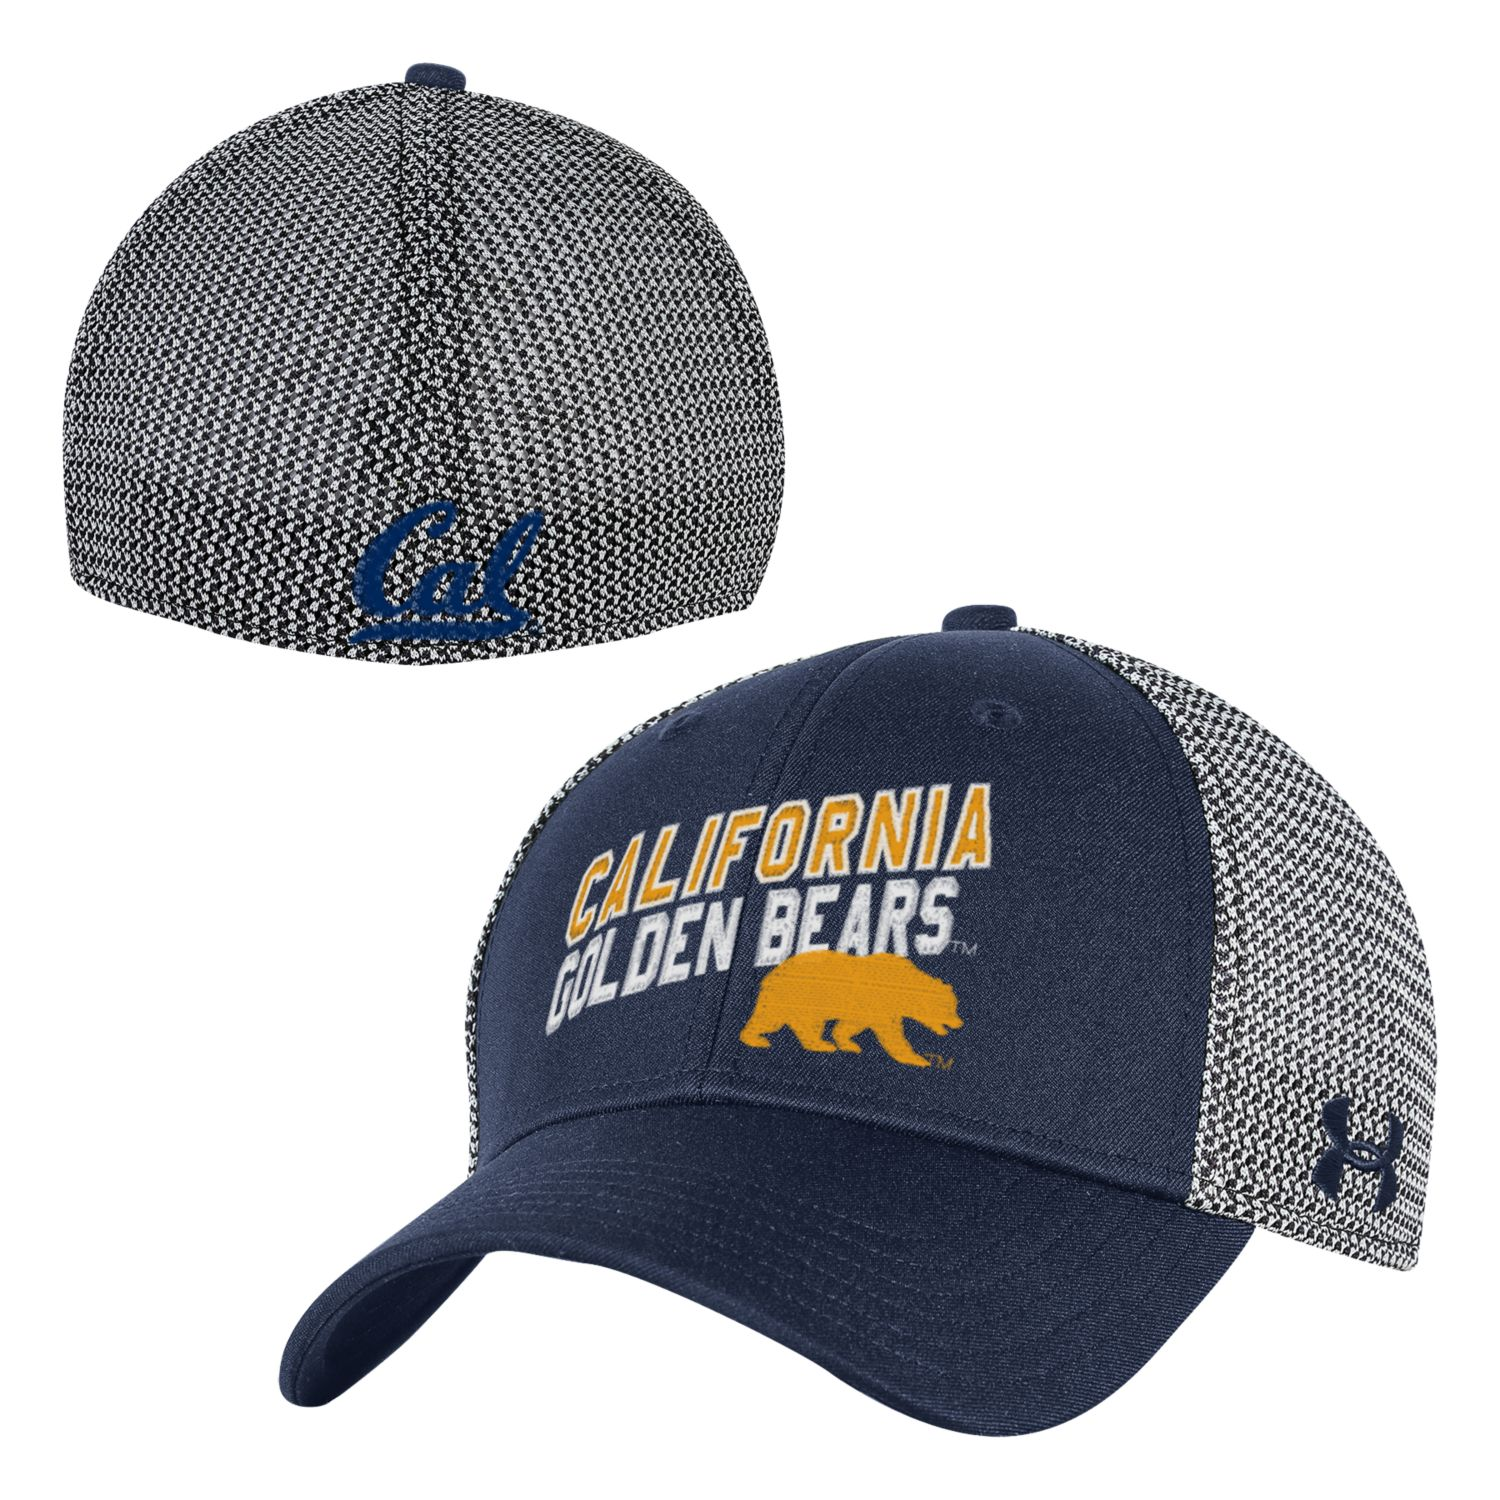 University of California Berkeley Under Armour Men's Mesh Knit Stretch Fit Cap